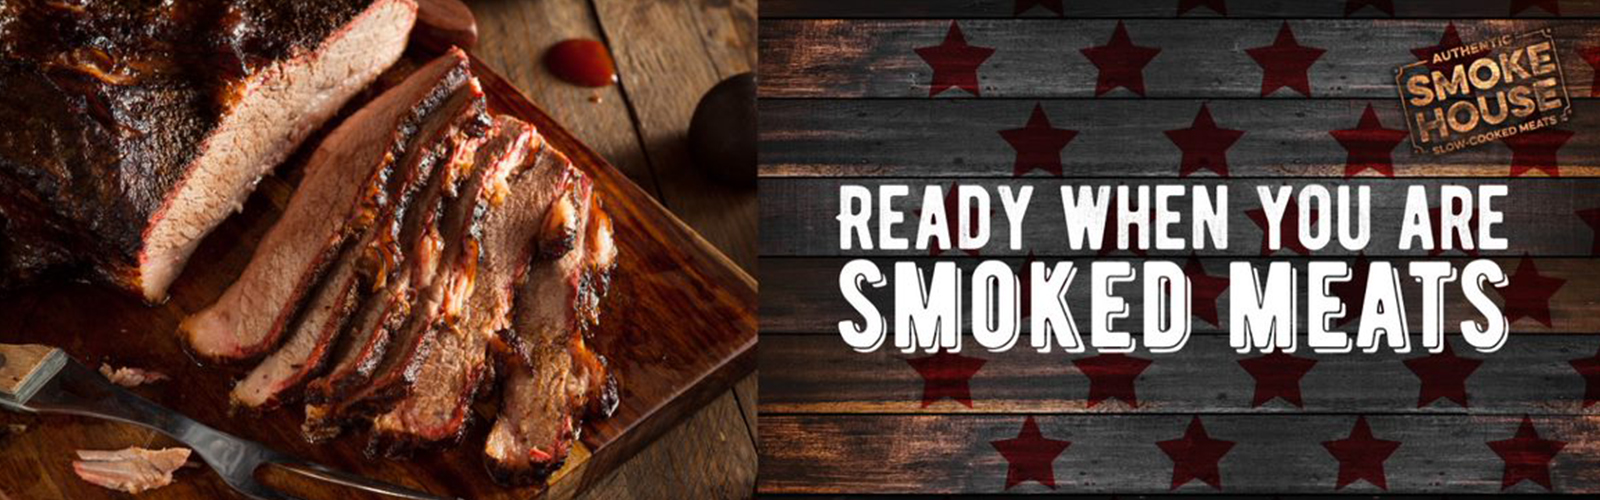 Ready When You Are Smoked Meats